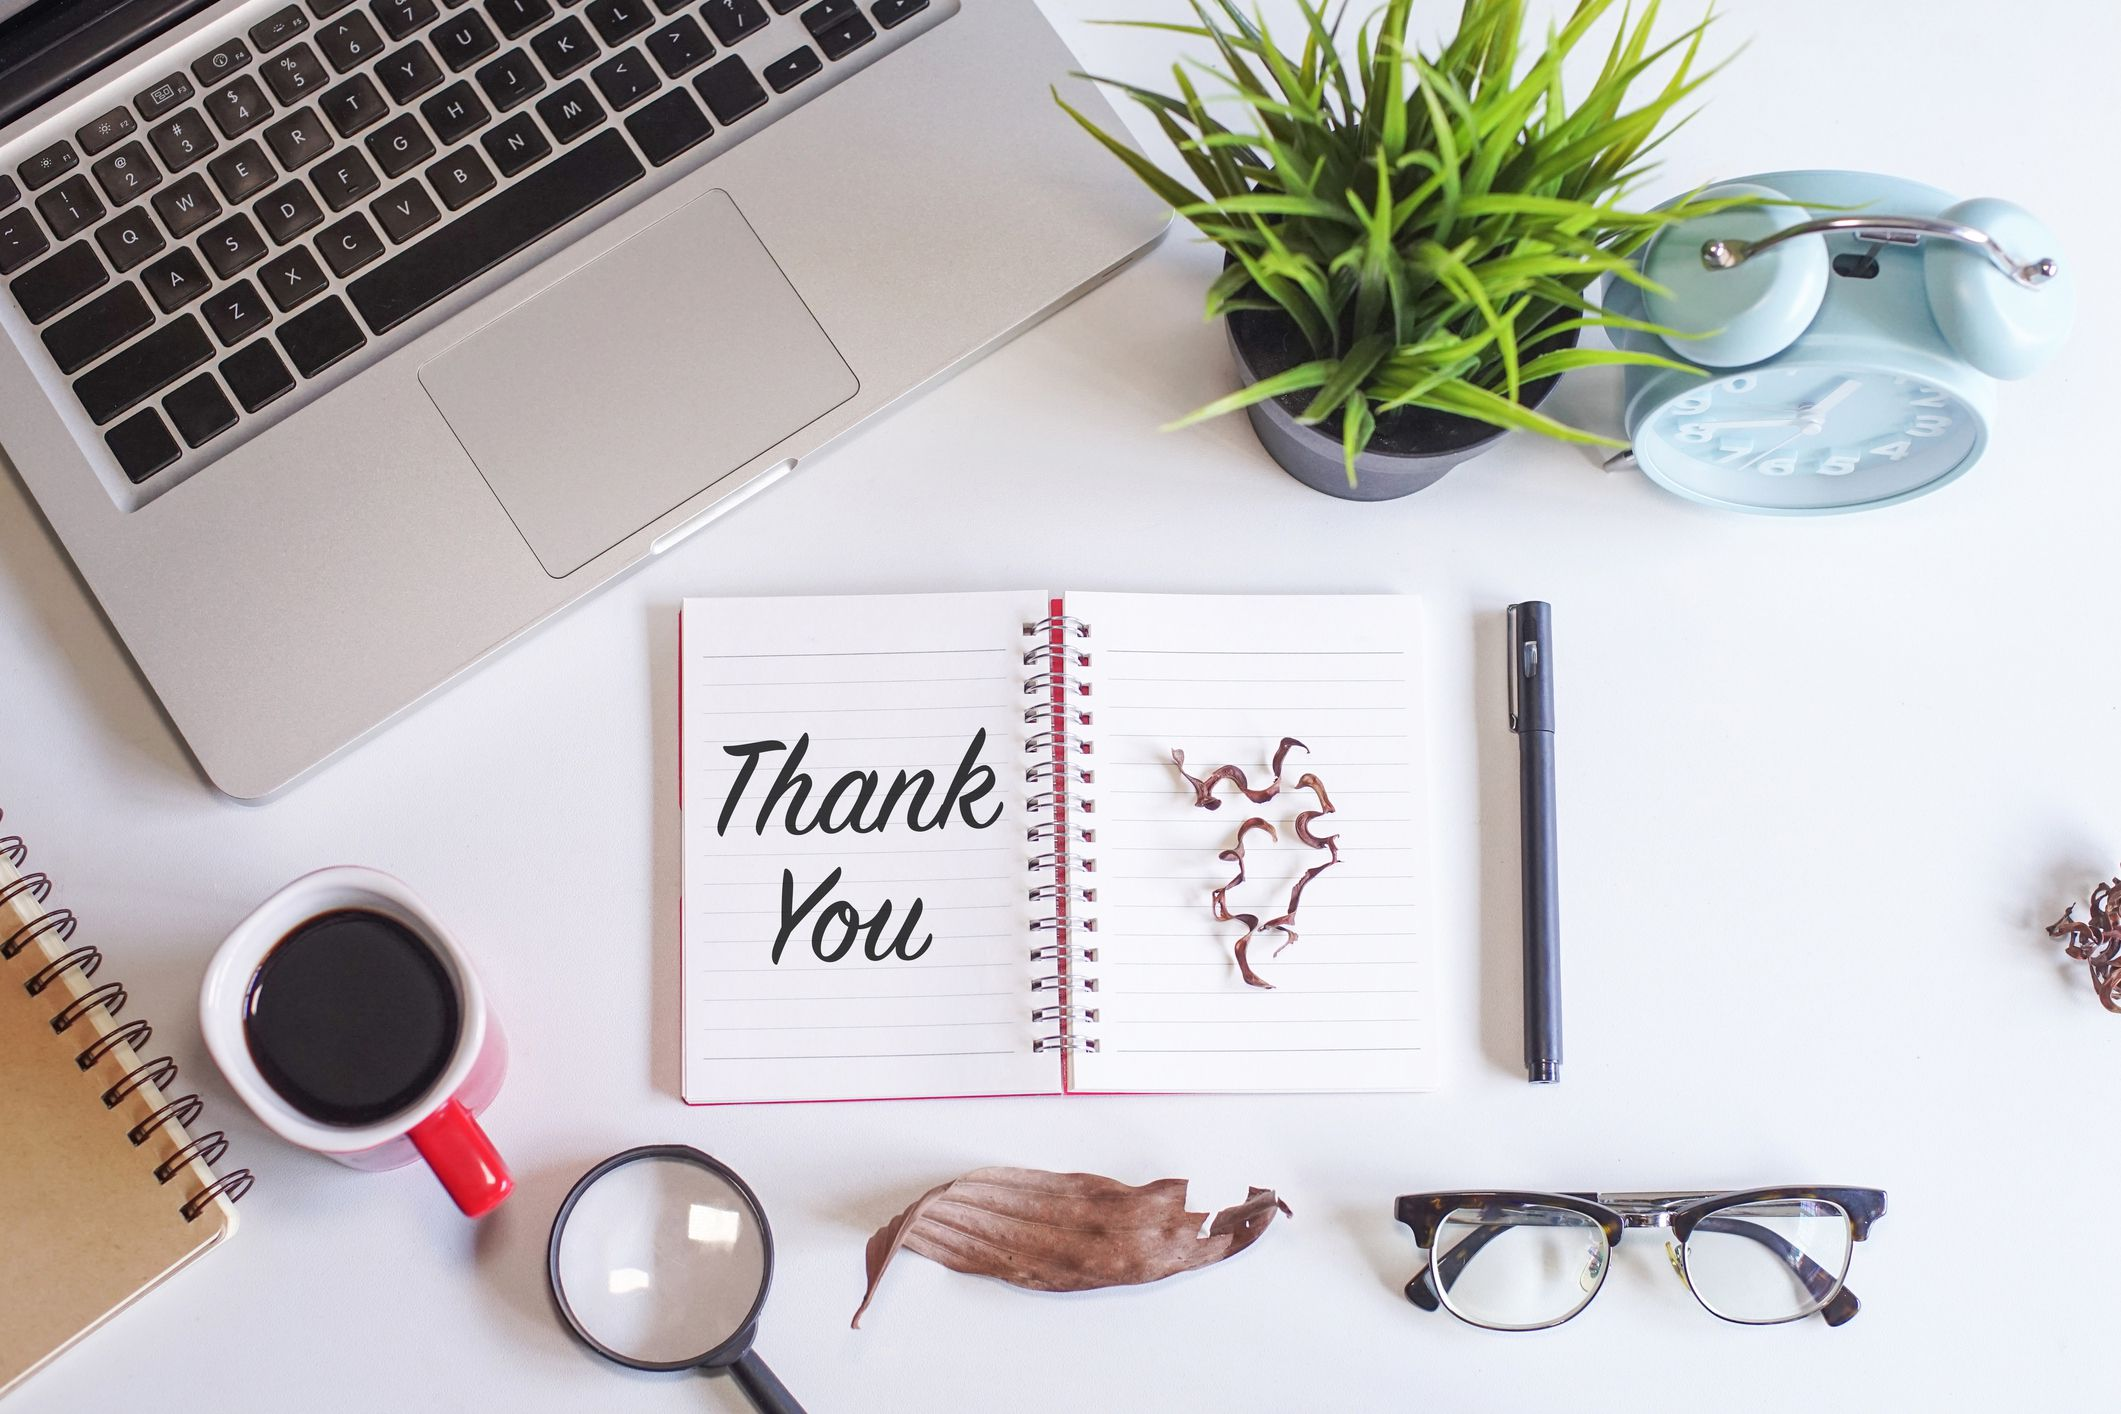 Thank You Email After Job Interview Examples